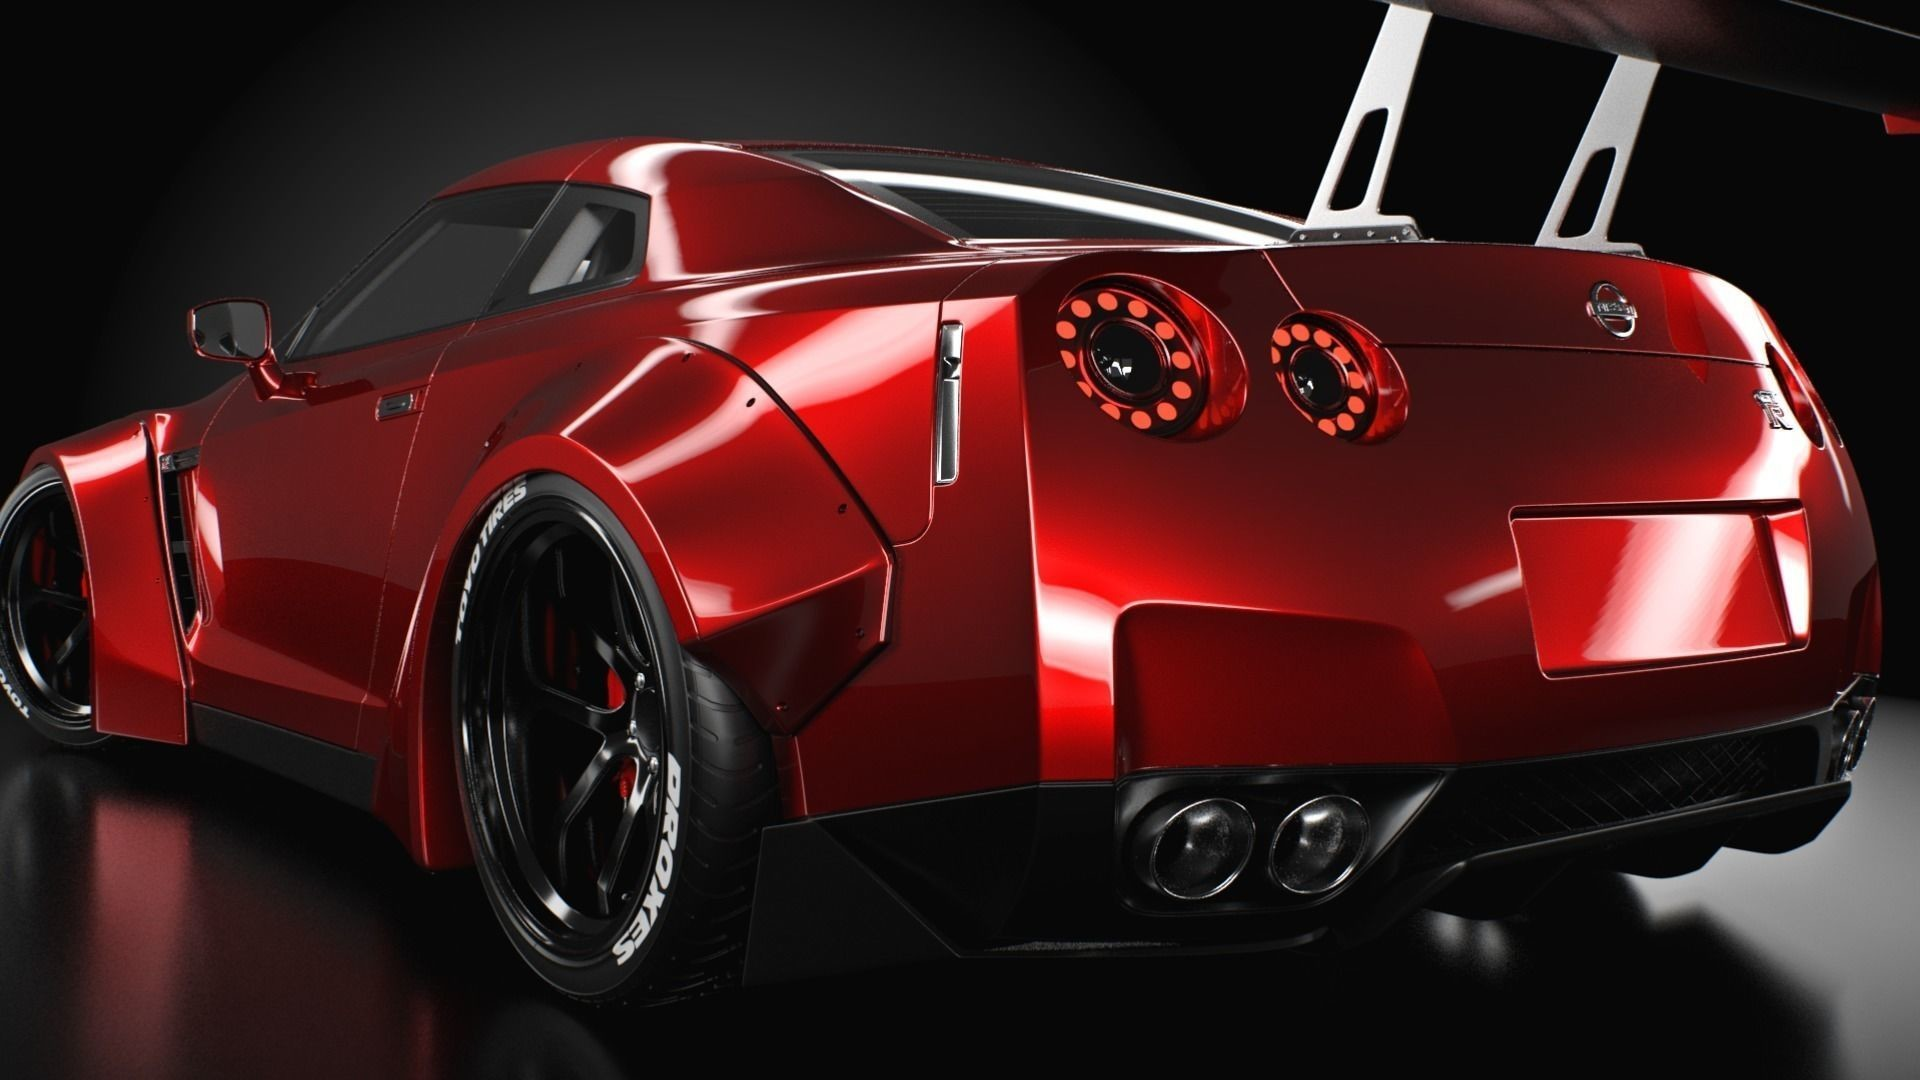 Nissan GTR Liberty Walk Wallpaper 87 Images